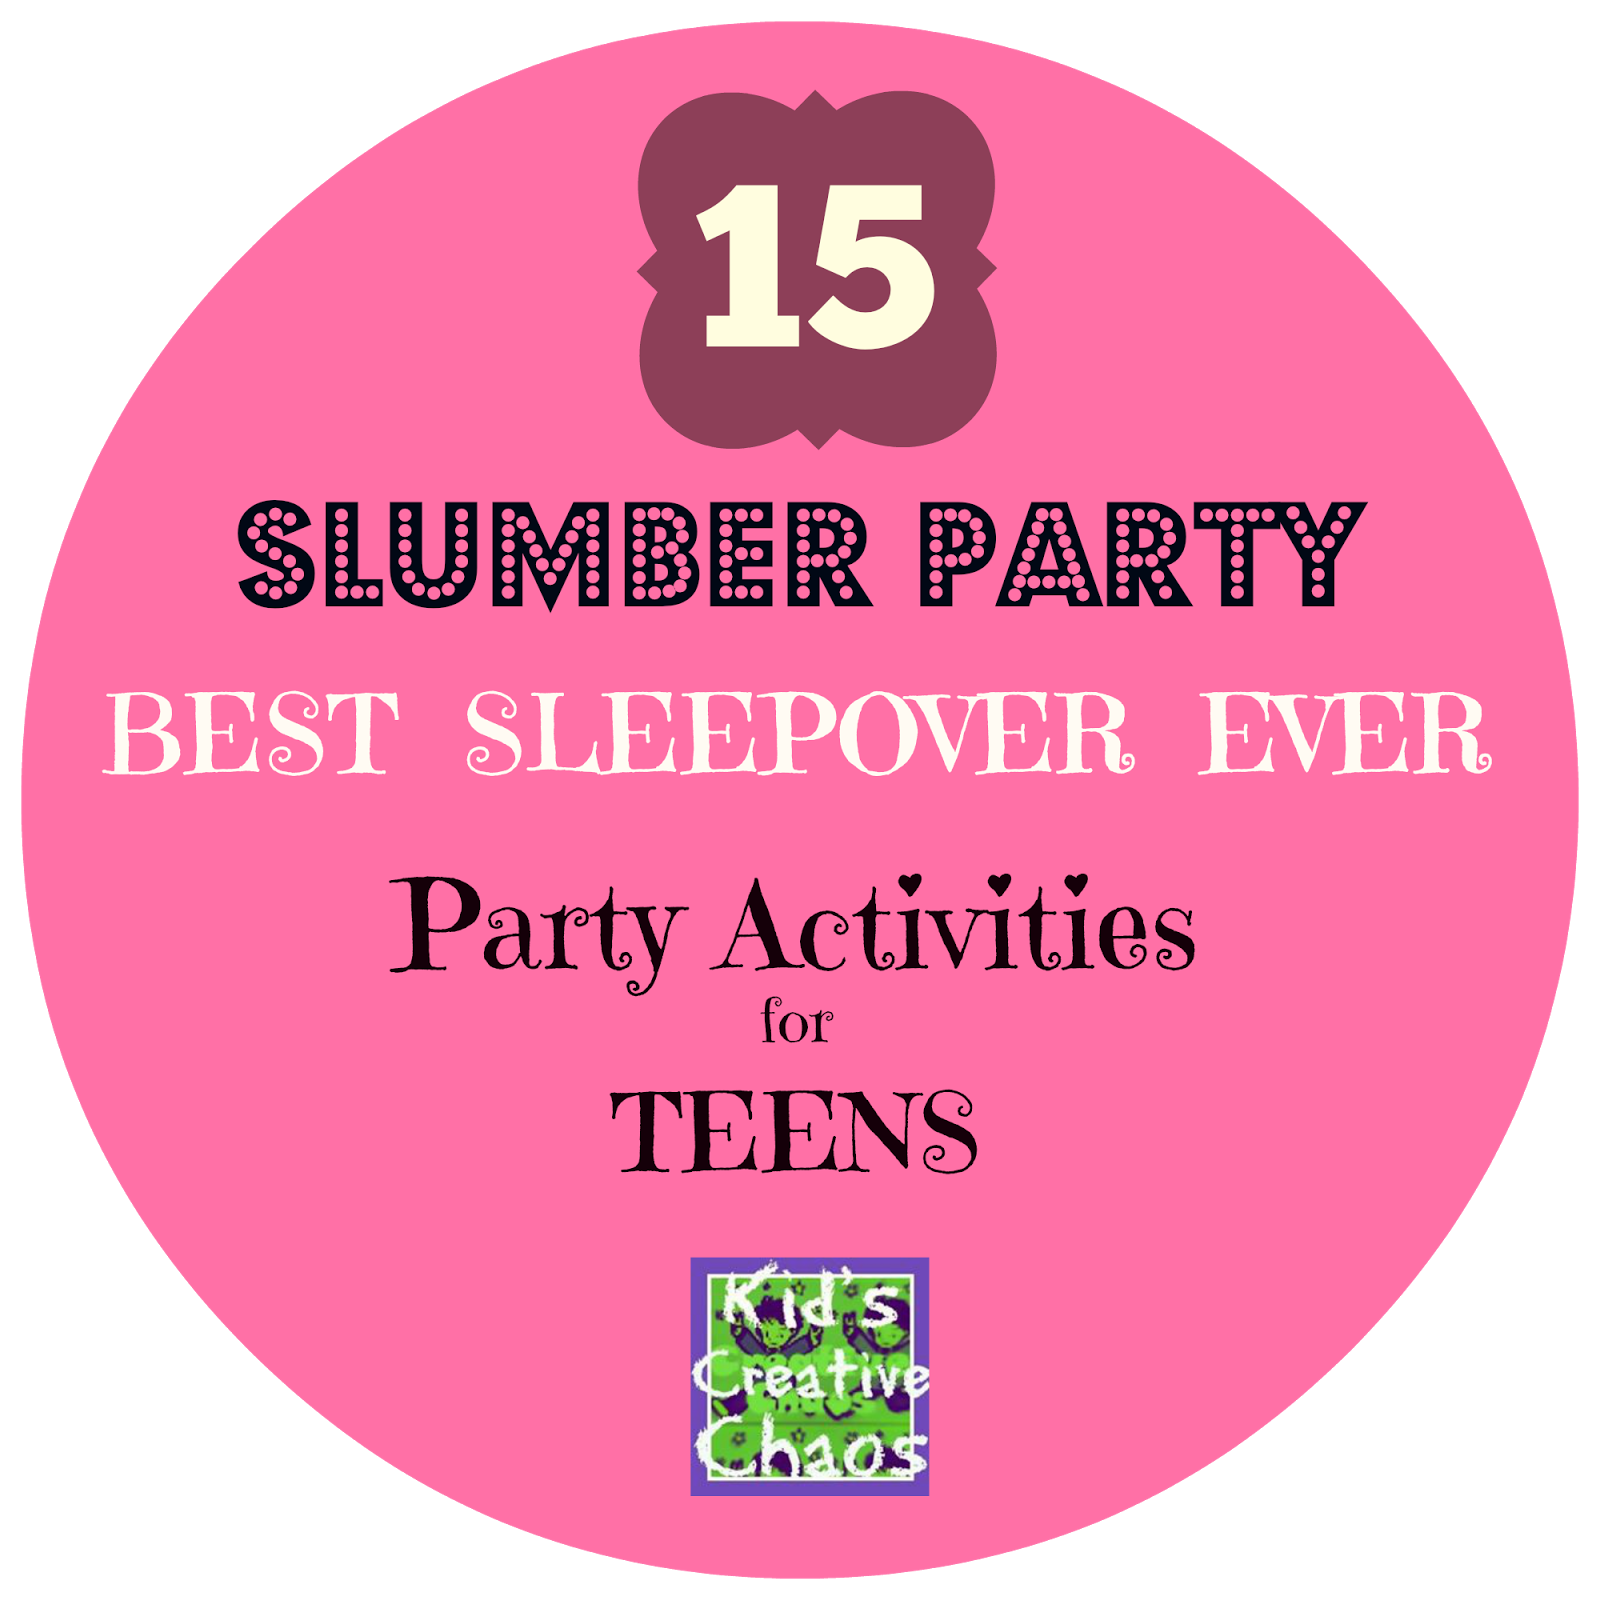 Slumber party png. Free download clip art